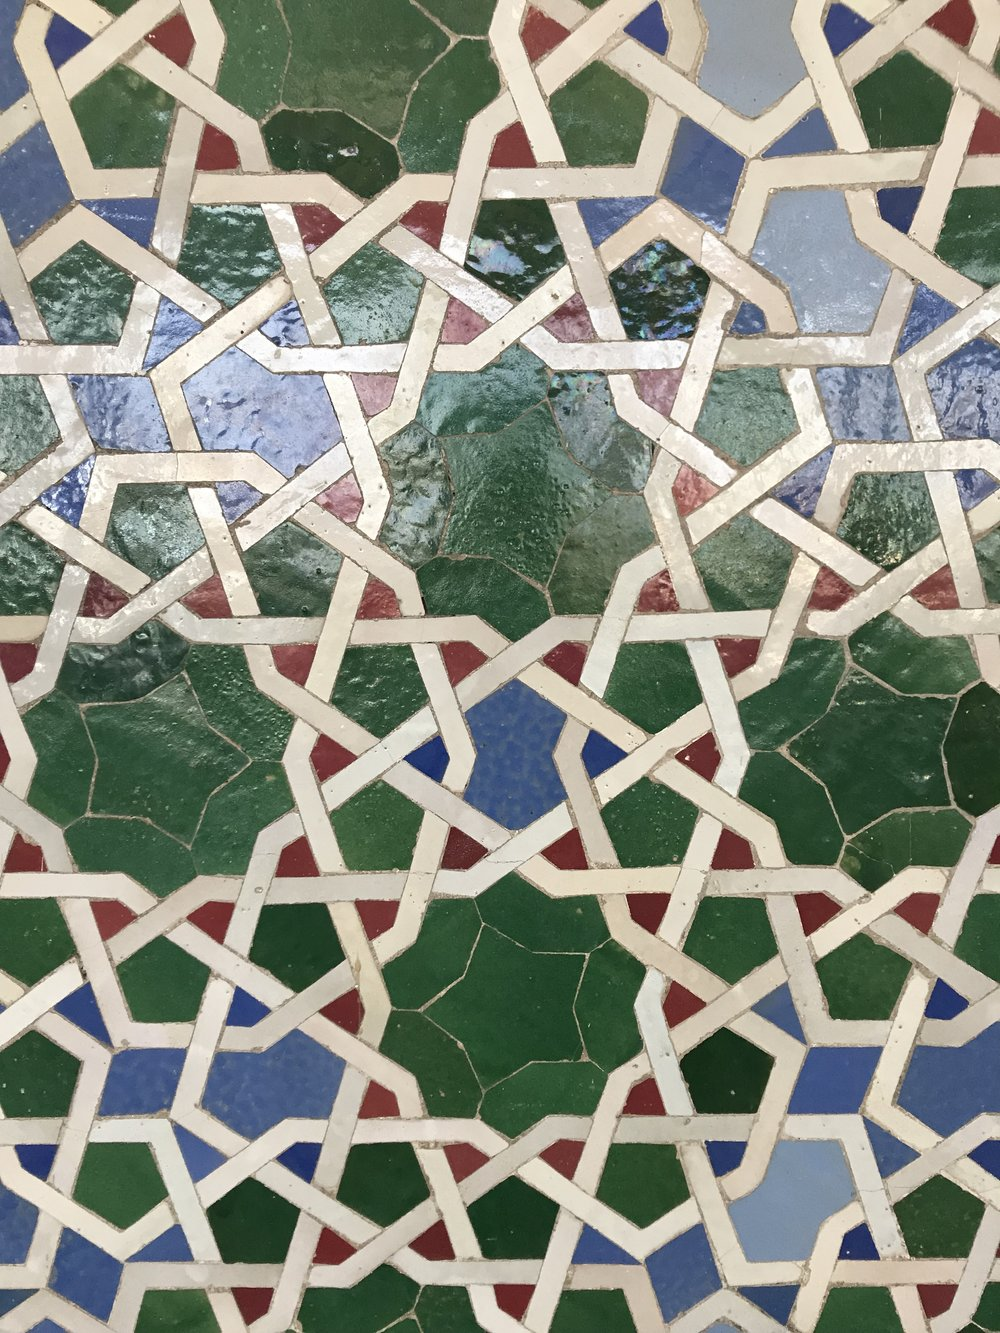 casablanca airport tile.JPG